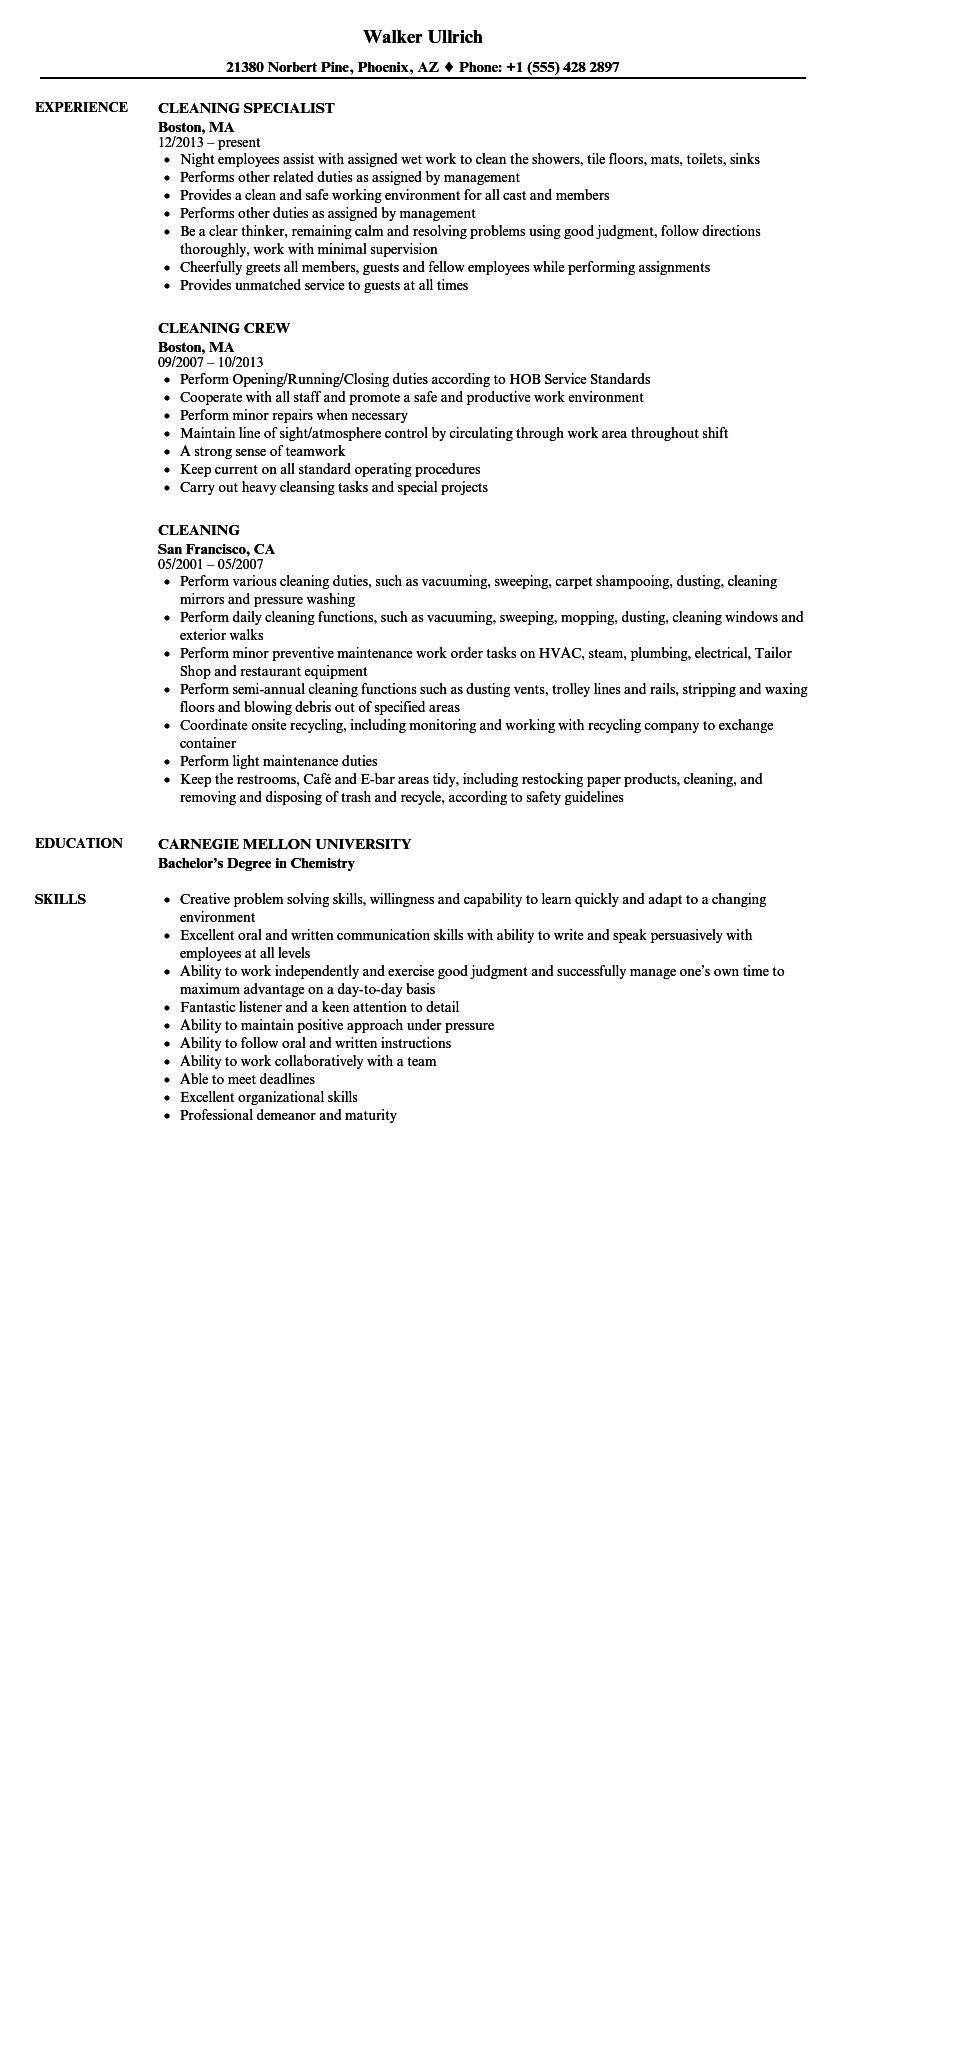 24 Stunning Resume For Cleaning Job with Gallery